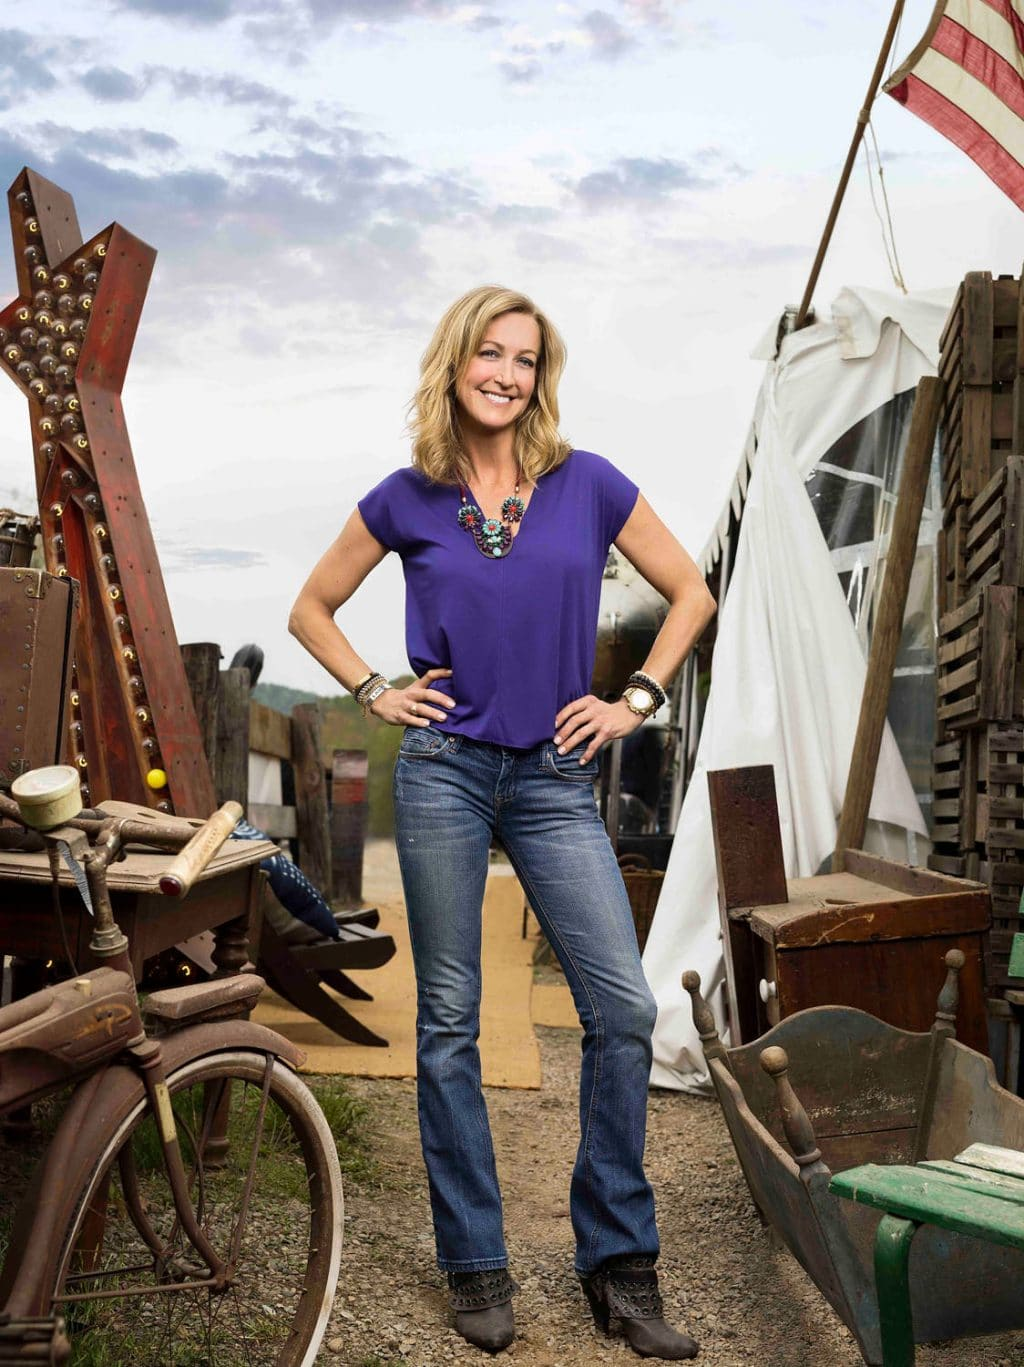 Lara Spencer, host of HGTV's Flea Market Flip, season 6.